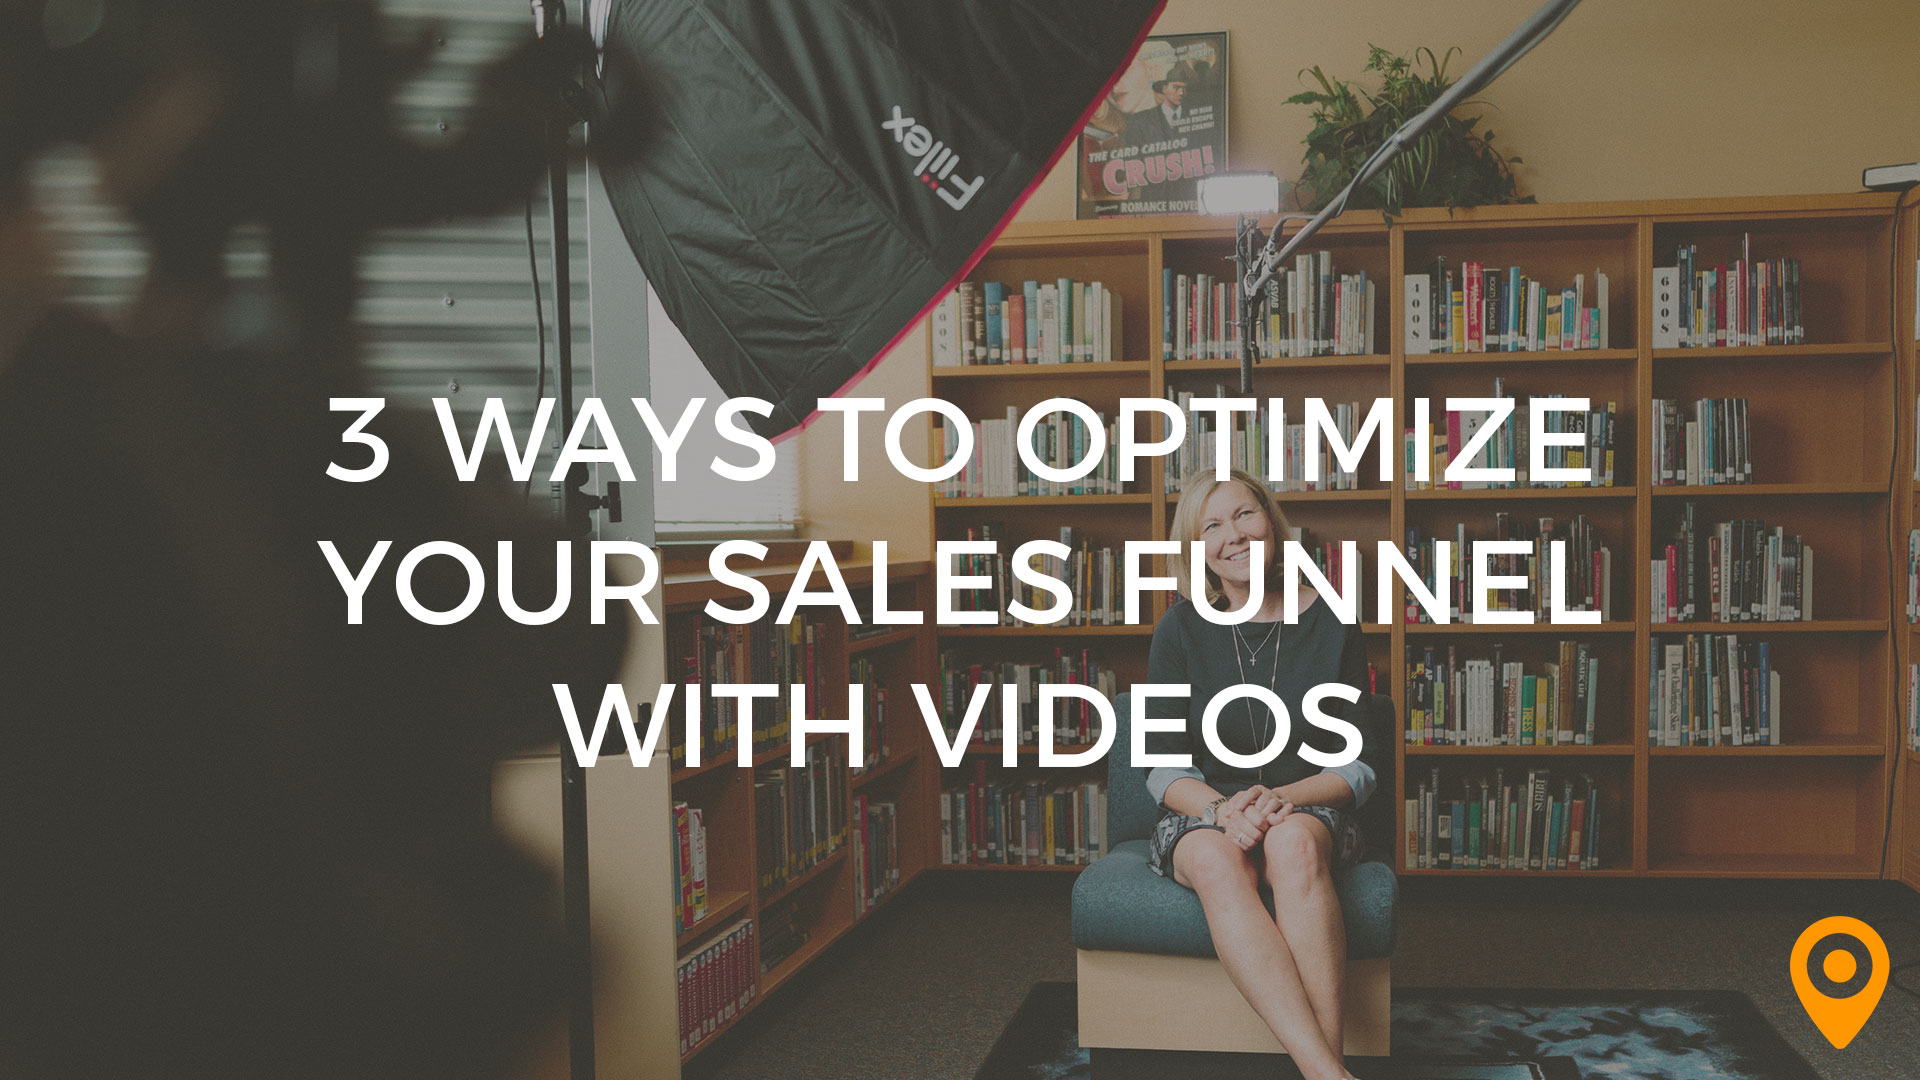 3 Ways to Optimize Your Sales Funnel with Video